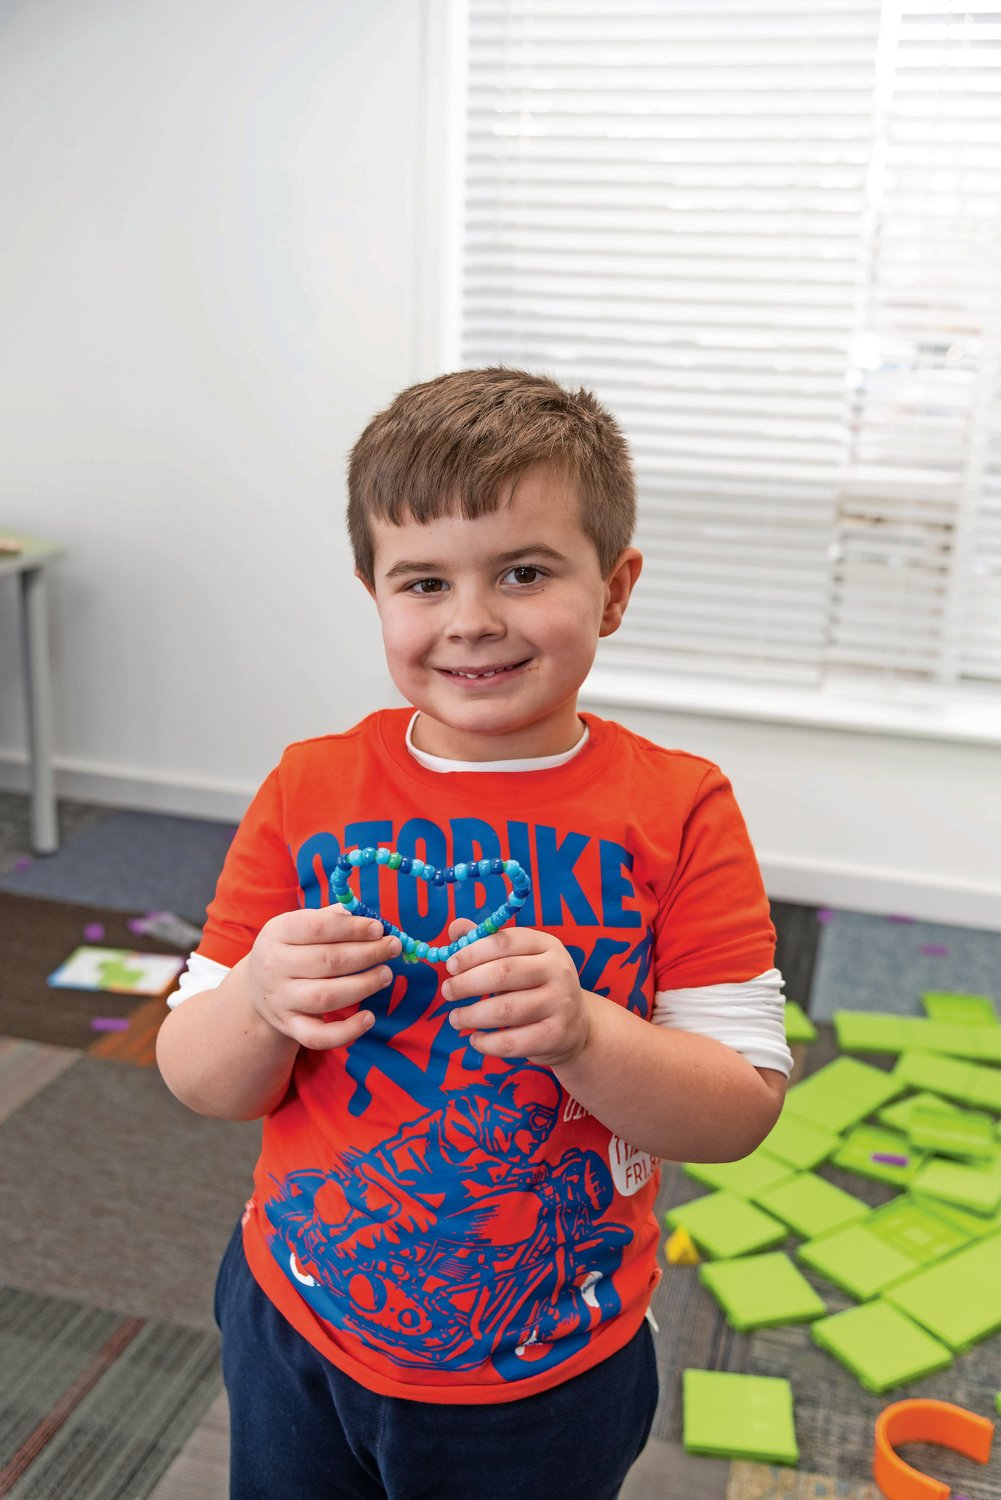 Richard Galati, 5, showed off his heart made of binary code.